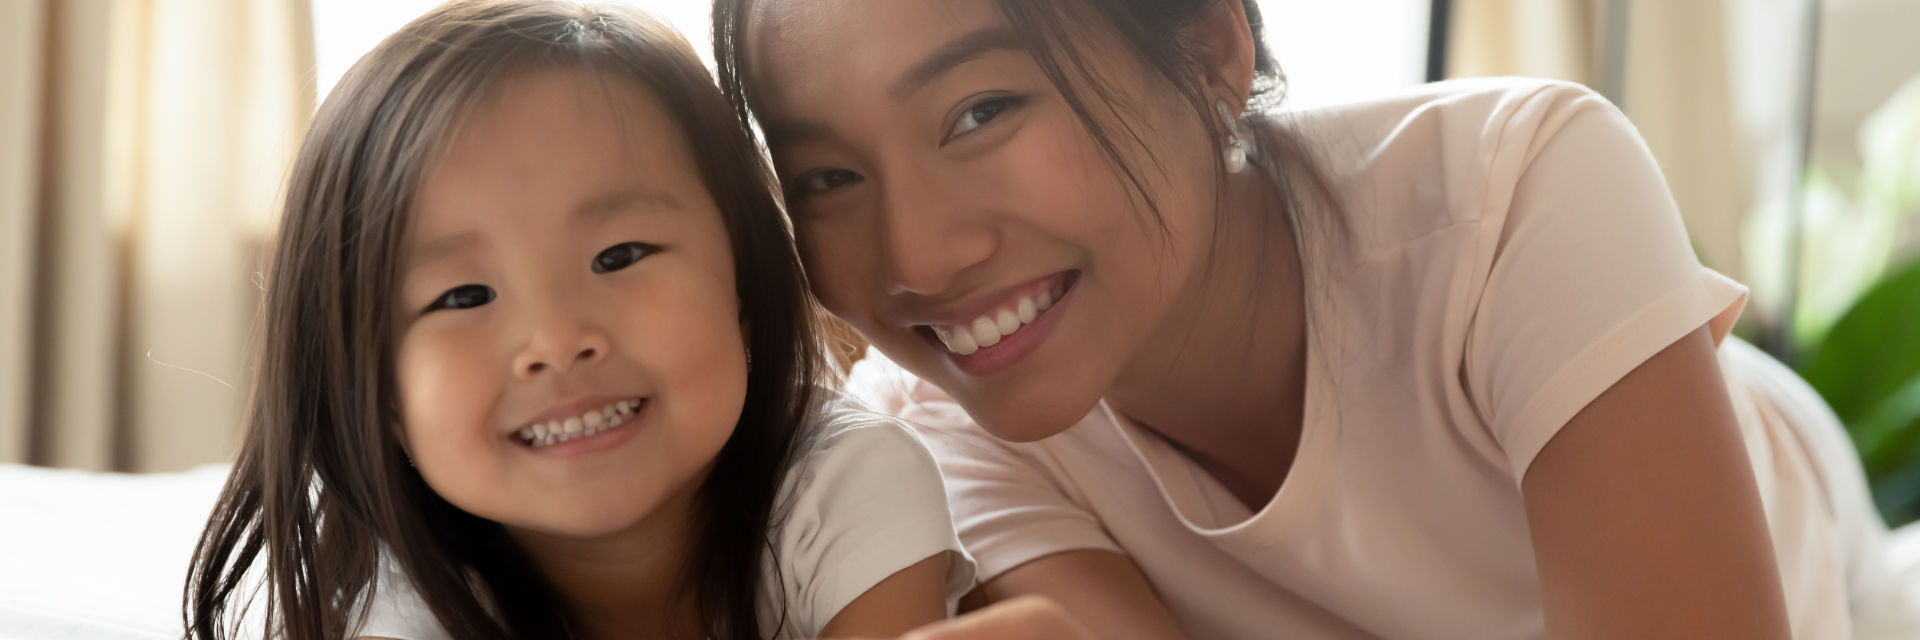 A happy Asian woman with her little daughter.